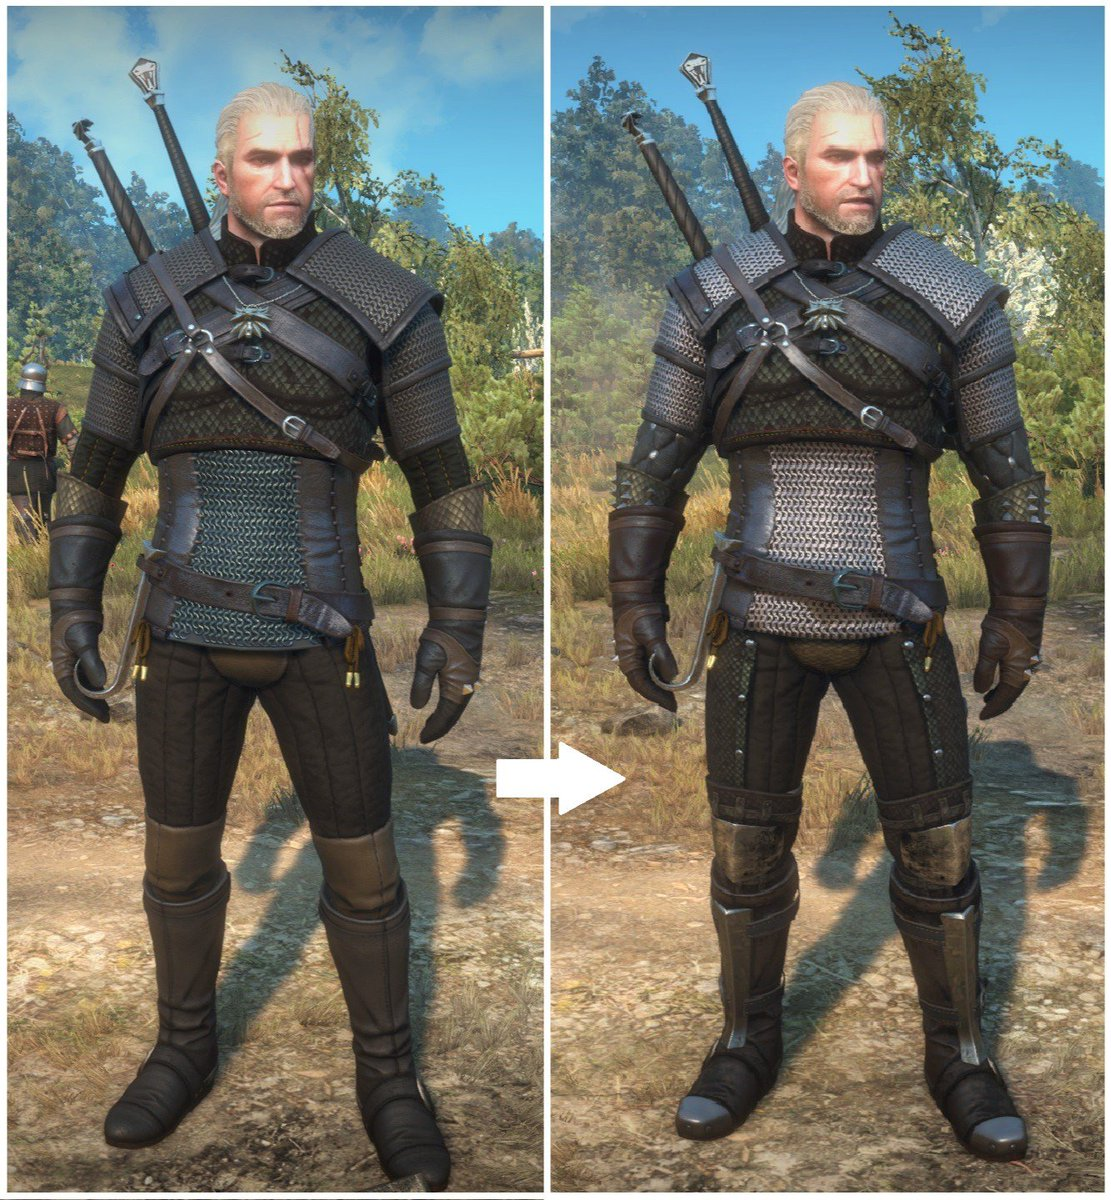 Nexus Mods On Twitter Grand Master Viper Armor Modifies The Appearance Of The Viper Armor To Give It A More Sophisticated Look Https T Co Ttkvrqfovx Nexusmods Tw3 Witchermods Tw3mods Https T Co Ihqa09fszp